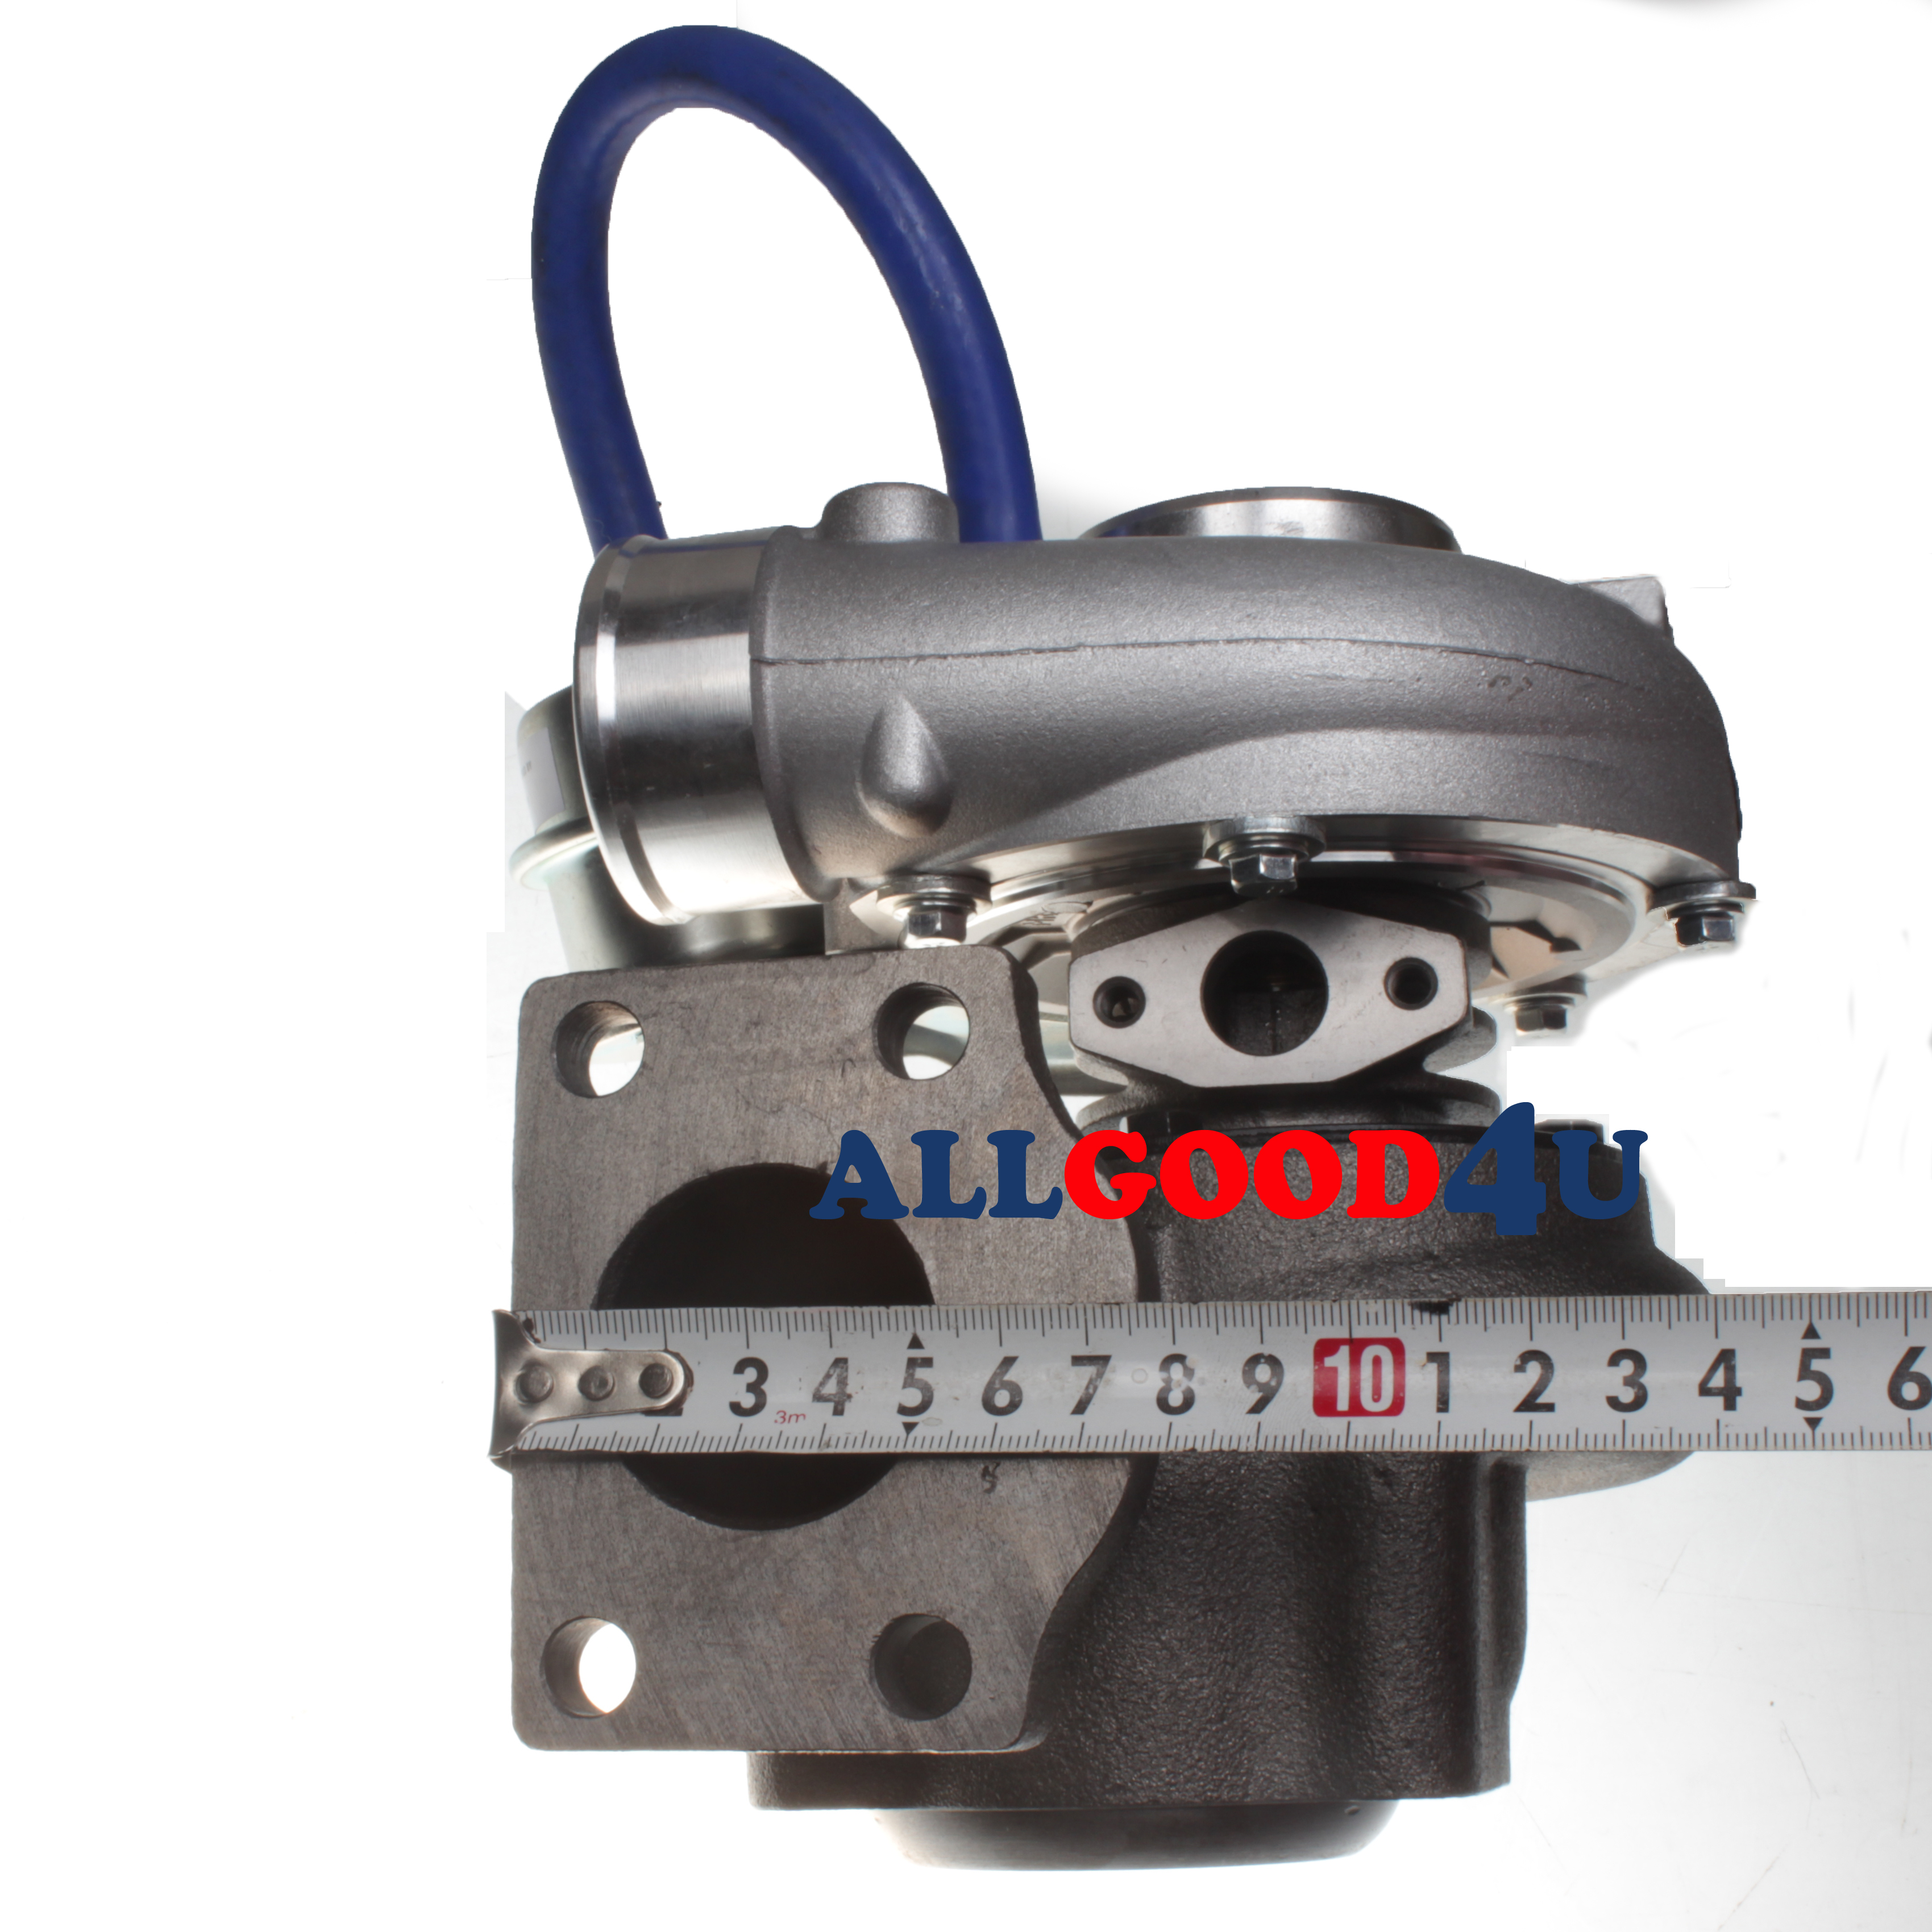 Details about Turbocharger 2674A098 For Massey Ferguson 6235 6245 6255 6265  with Perkins T4 40